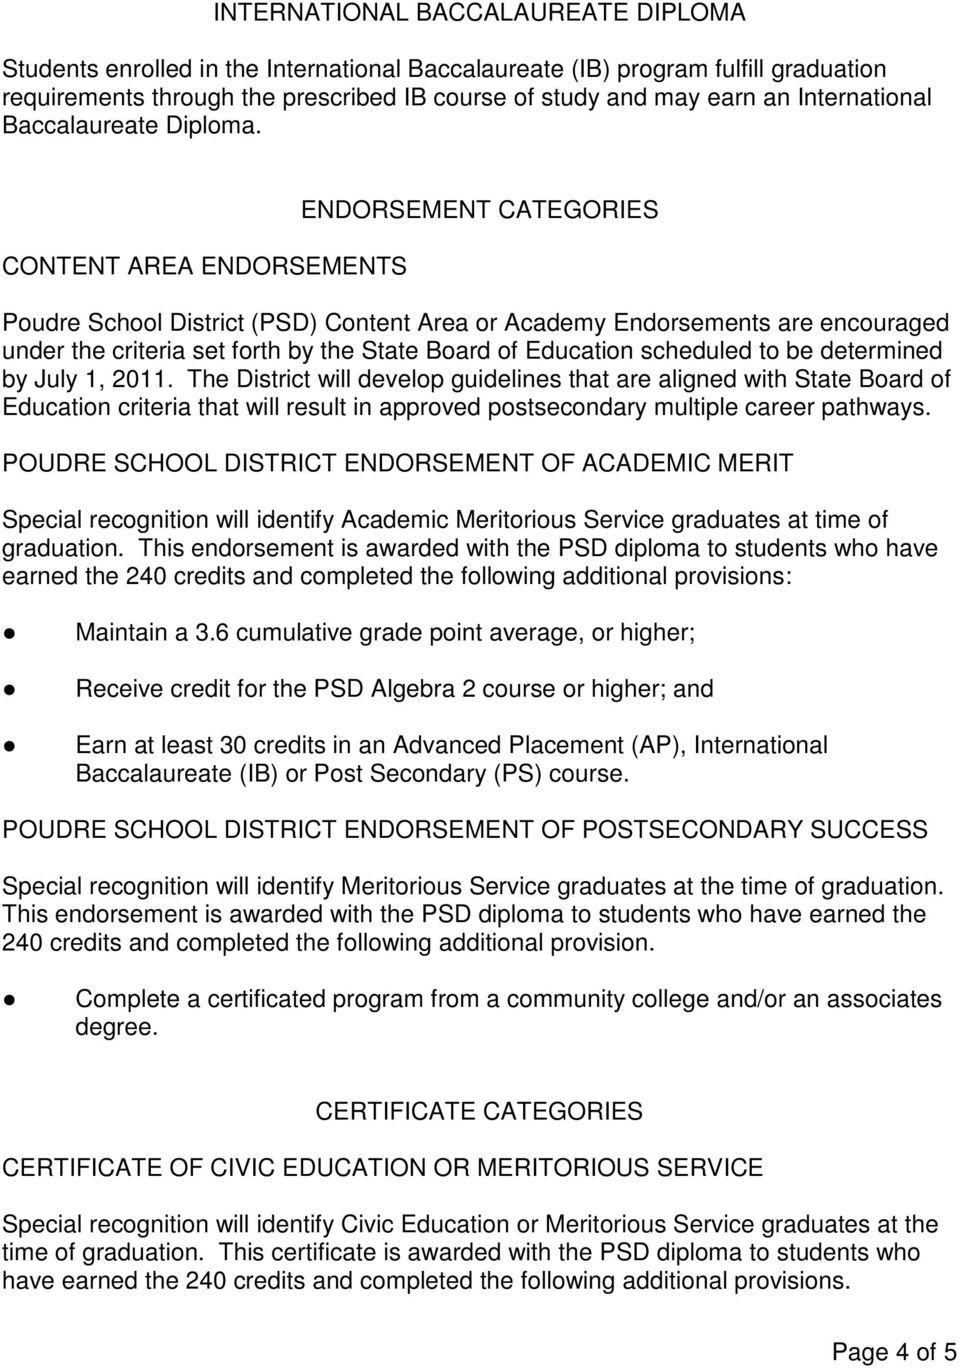 CONTENT AREA ENDORSEMENTS ENDORSEMENT CATEGORIES Poudre School District (PSD) Content Area or Academy Endorsements are encouraged under the criteria set forth by the State Board of Education